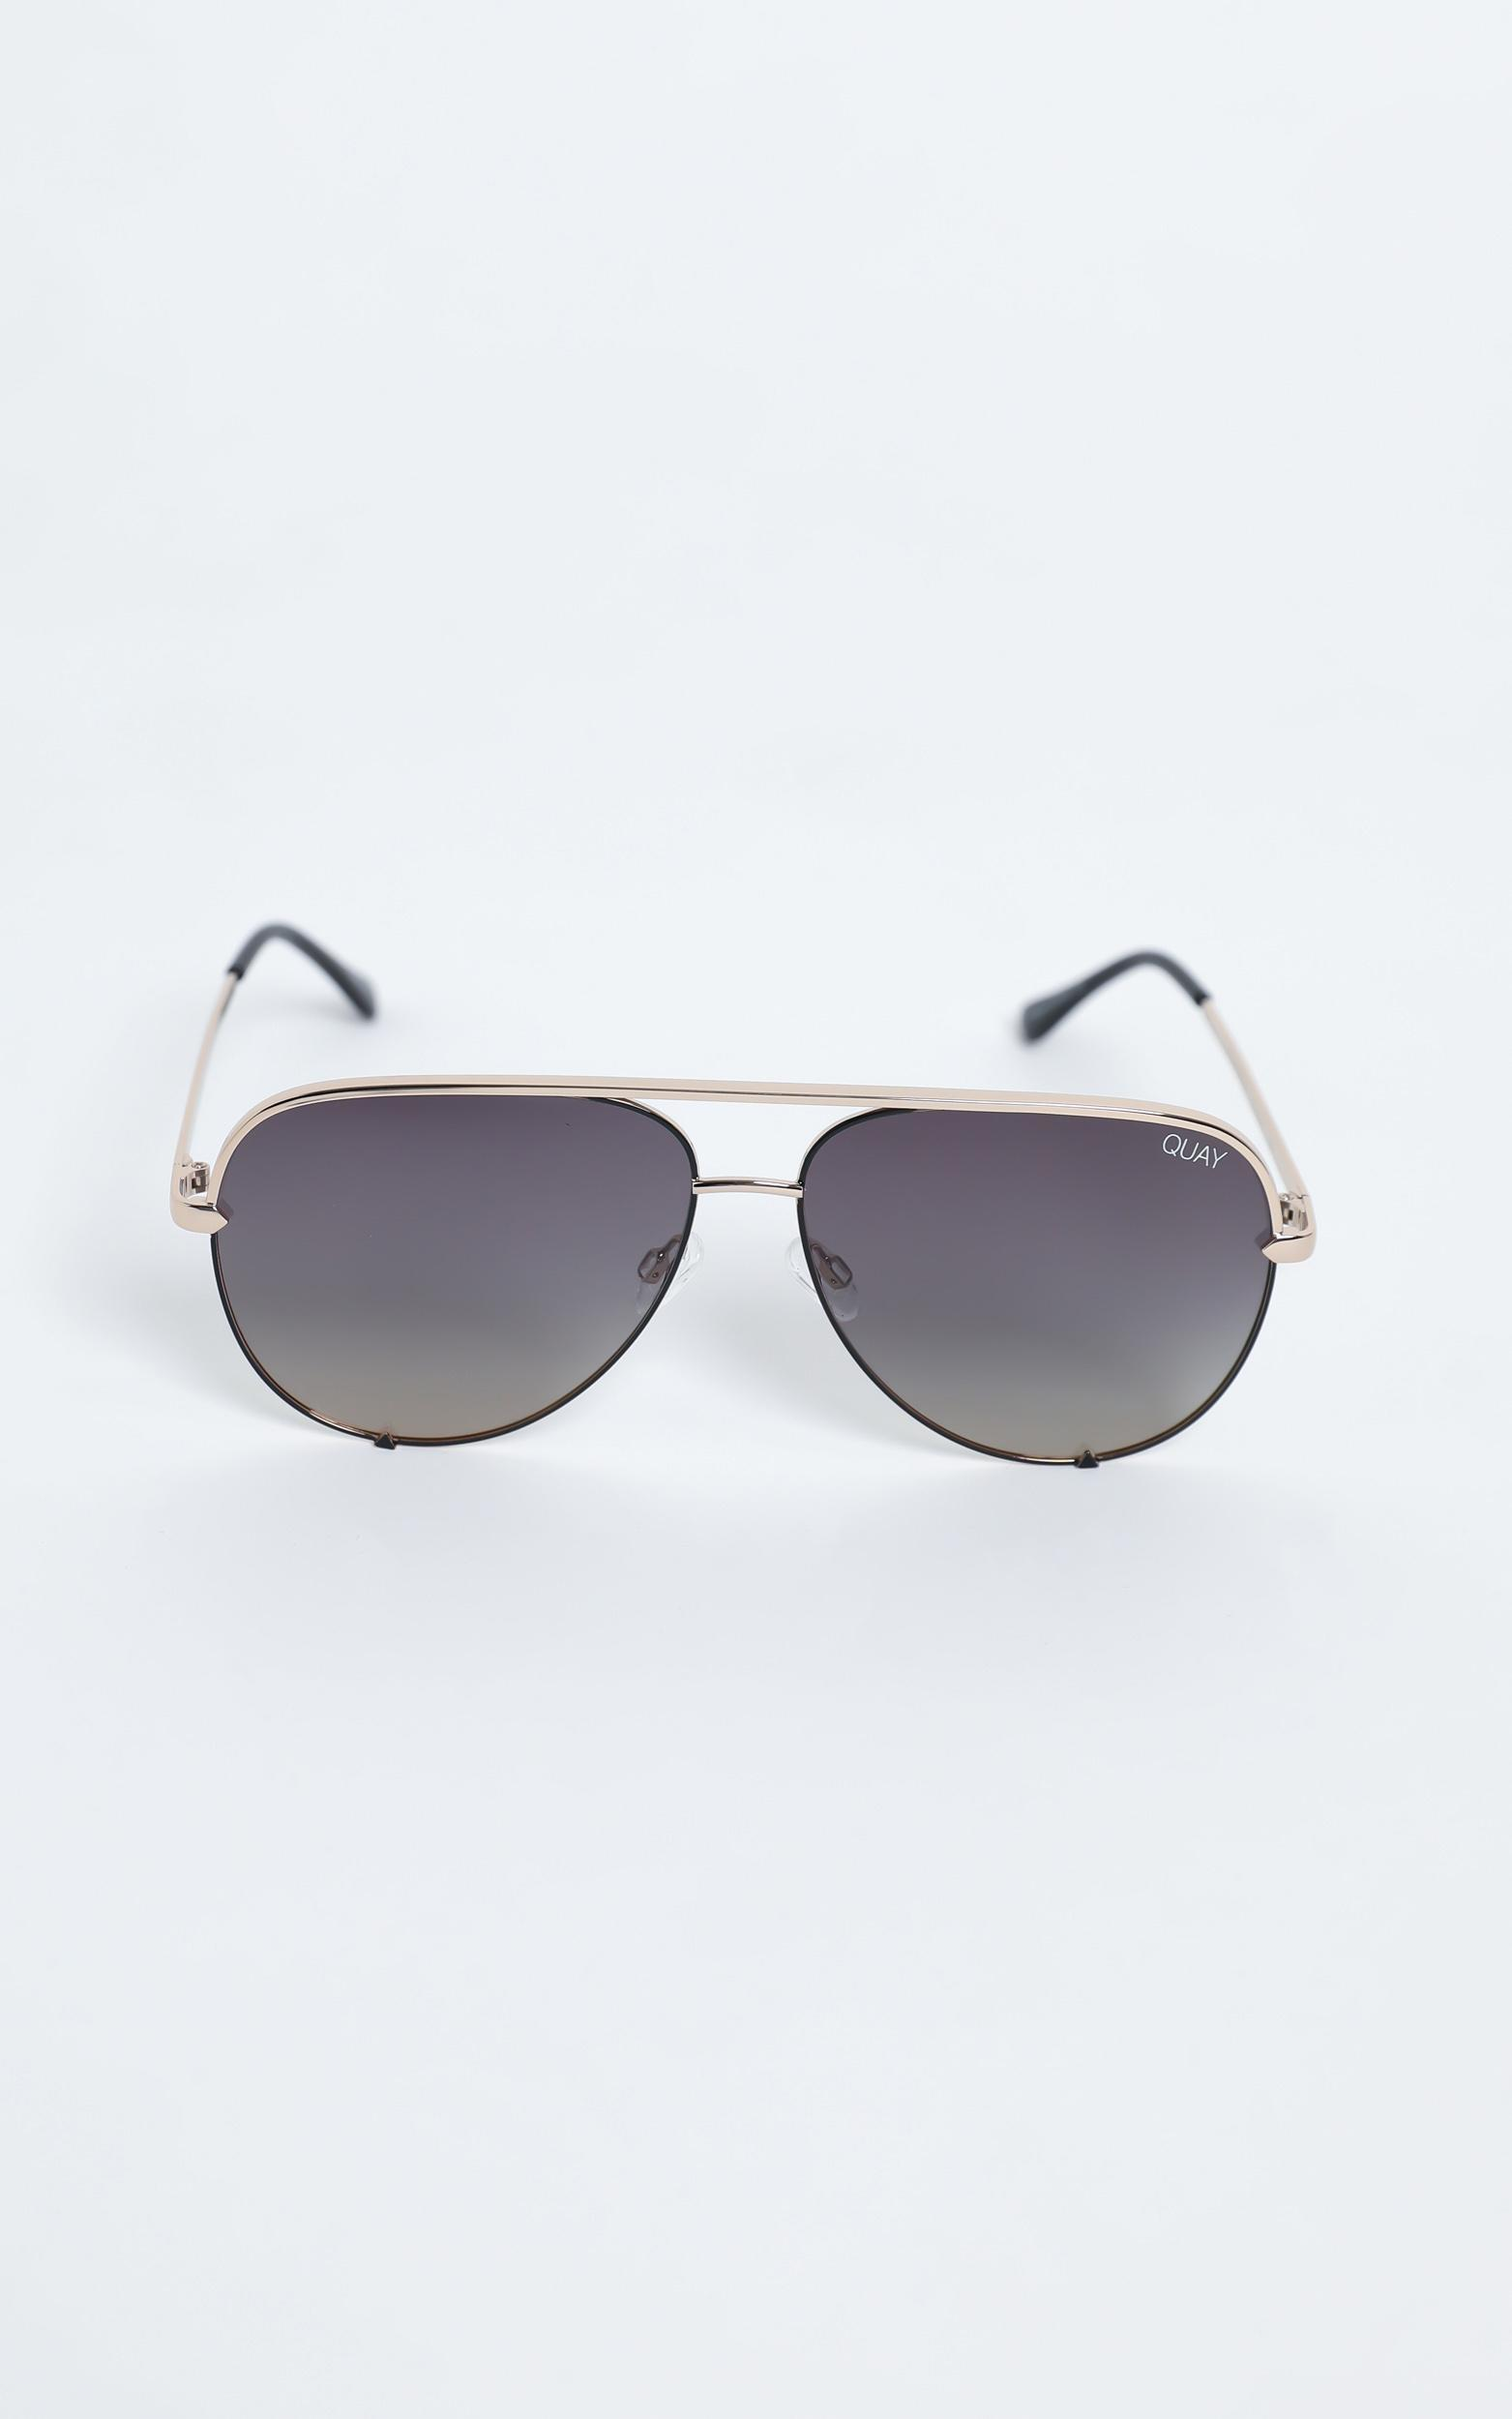 Quay - High Quay Sunglasses in Black Gold / Smoke, , hi-res image number null